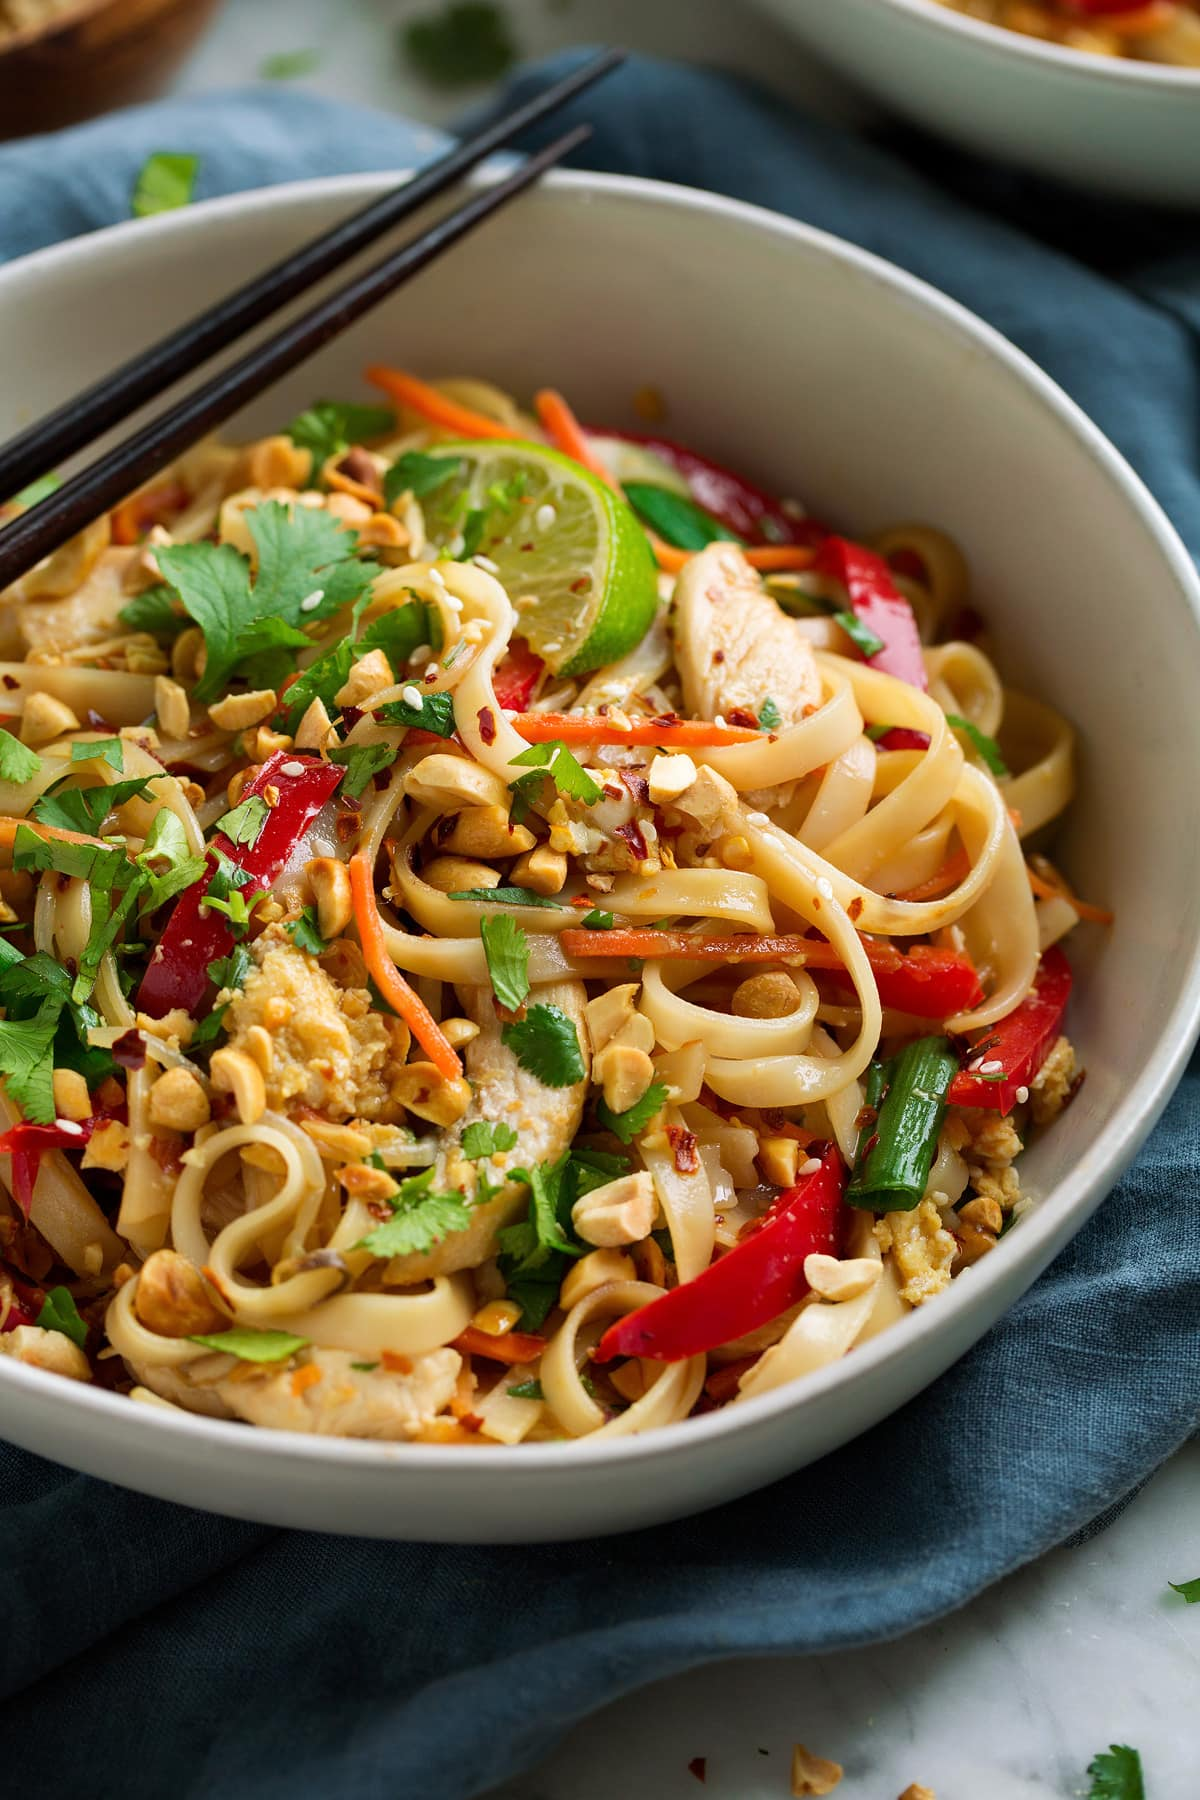 Close up image of Pad Thai showing rice noodles, vegetables, chicken, peanuts and cilantro.